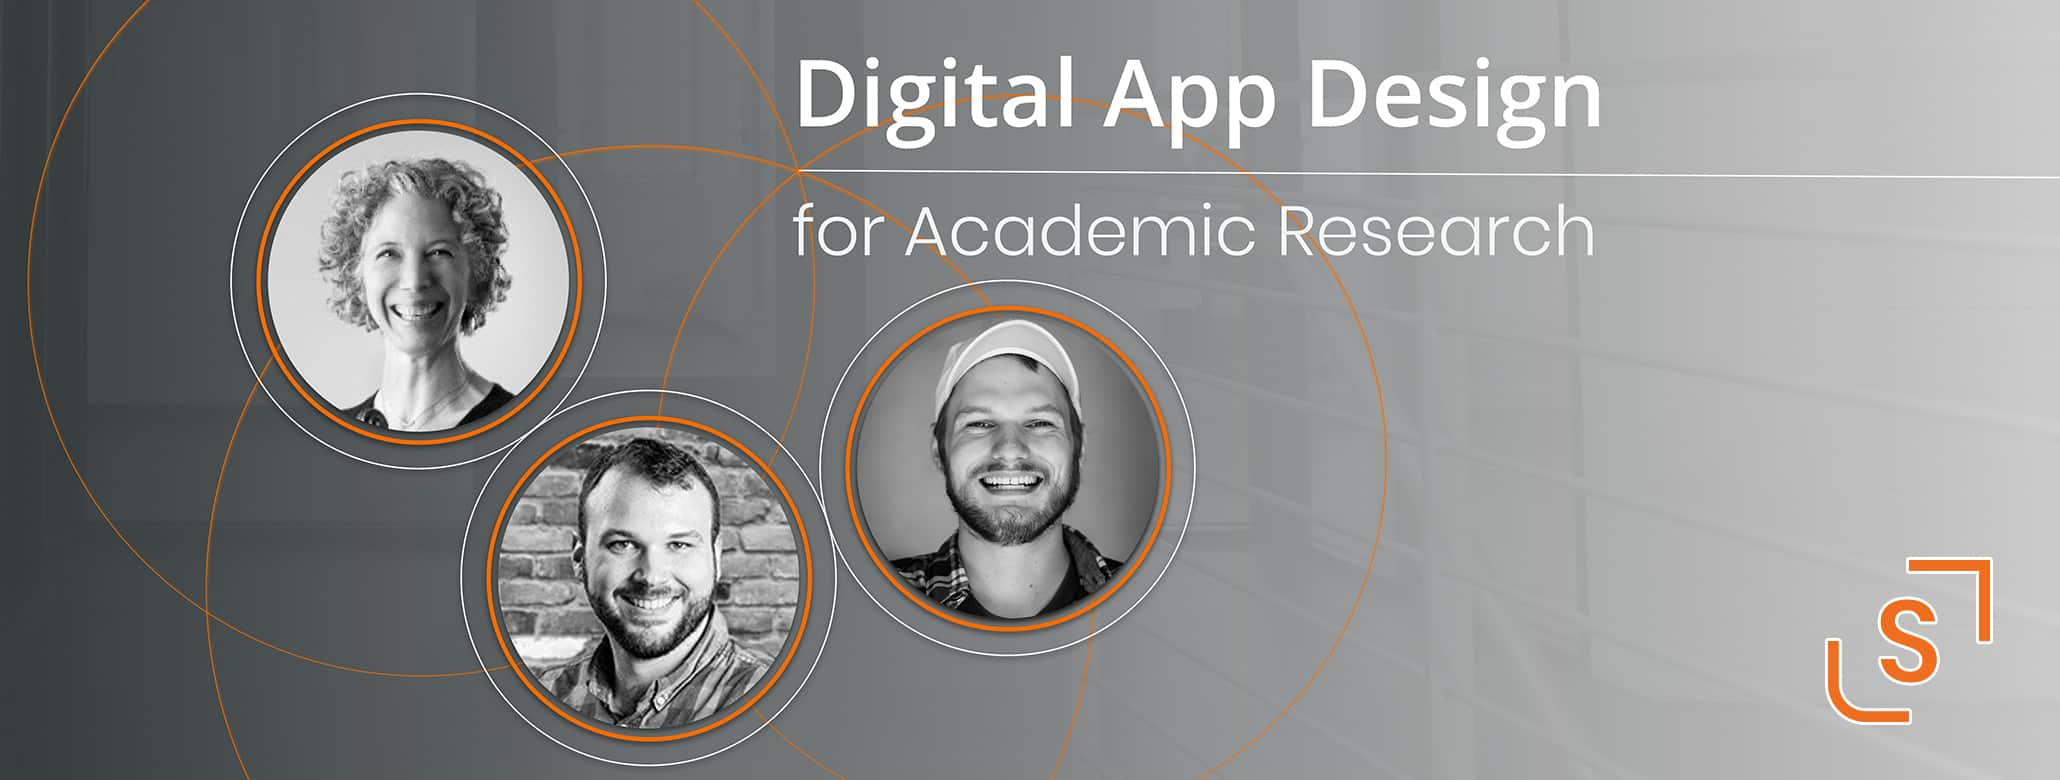 Event Recap: Digital App Design for Academic Research